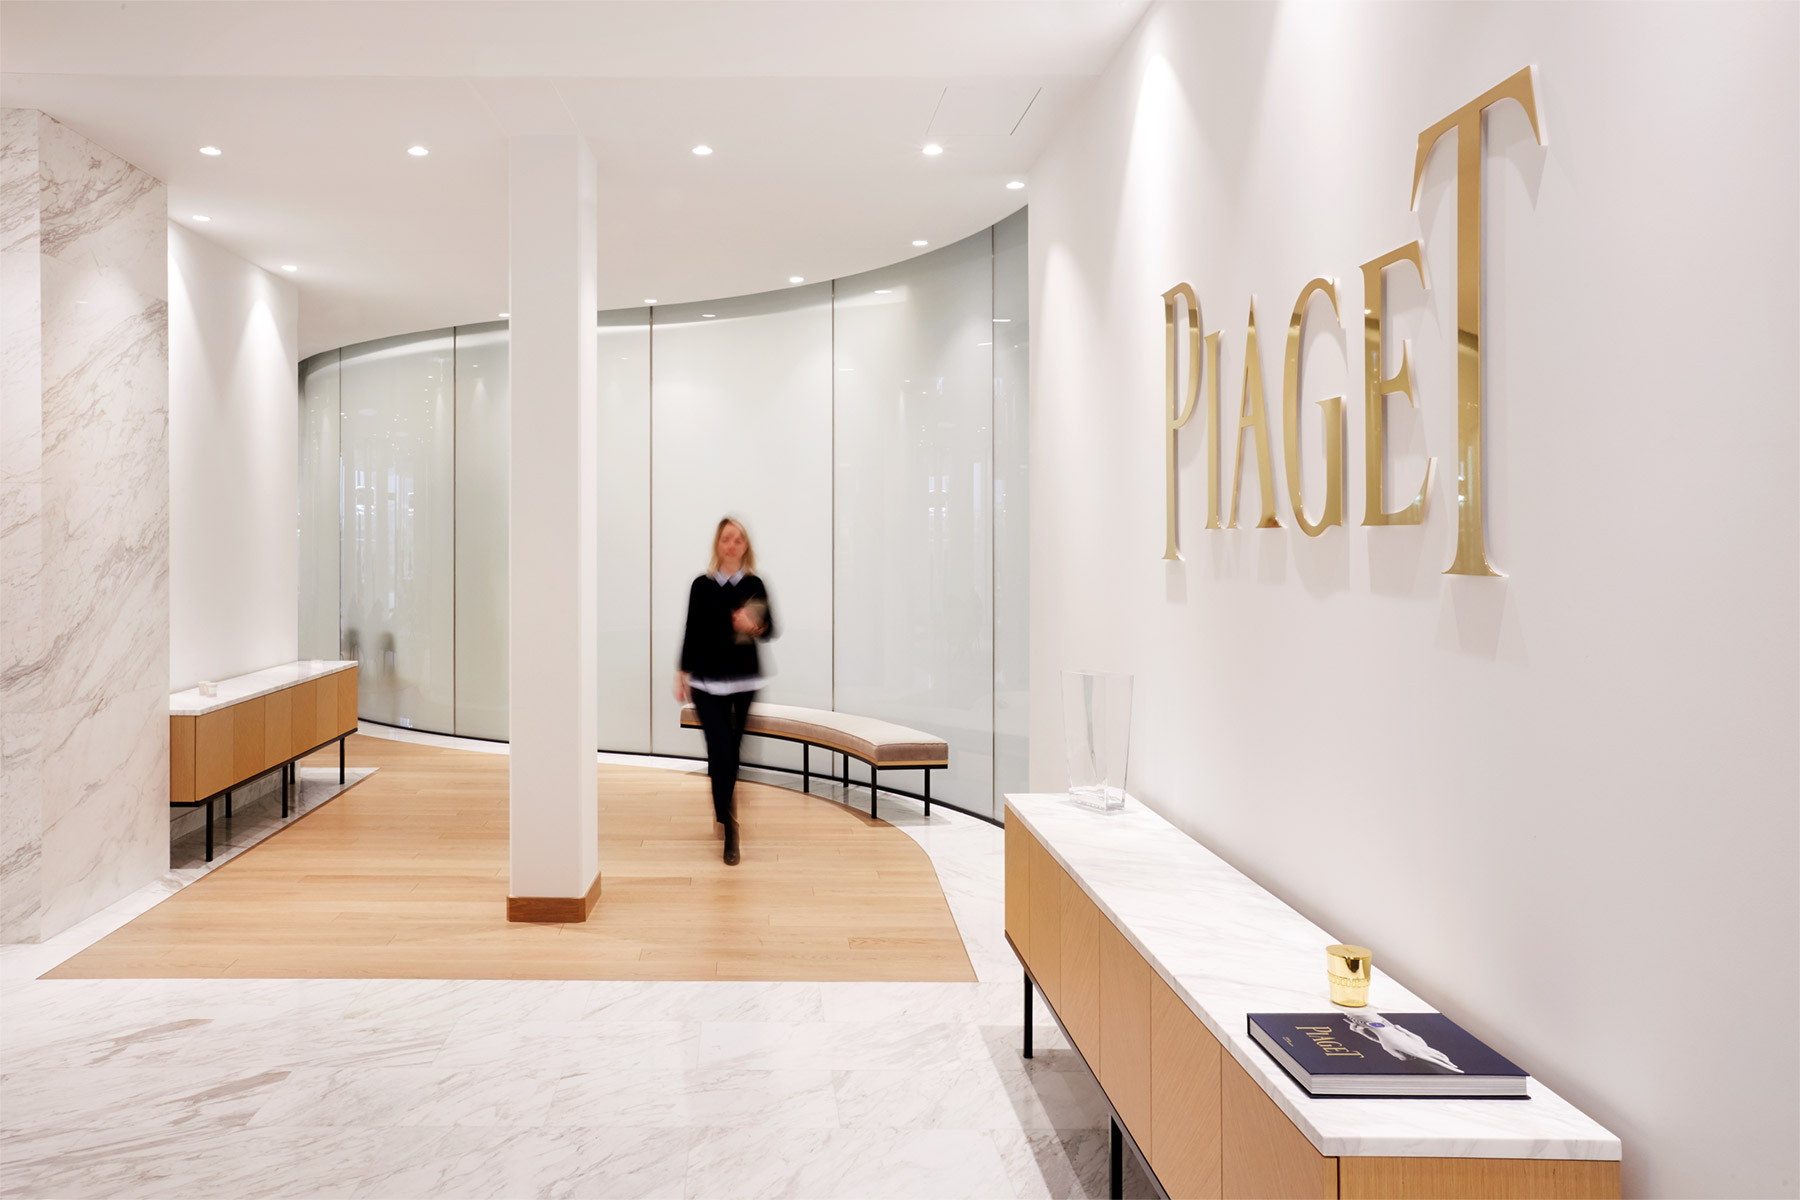 manufacture Piaget architecture Maud Guye-Vuilleme